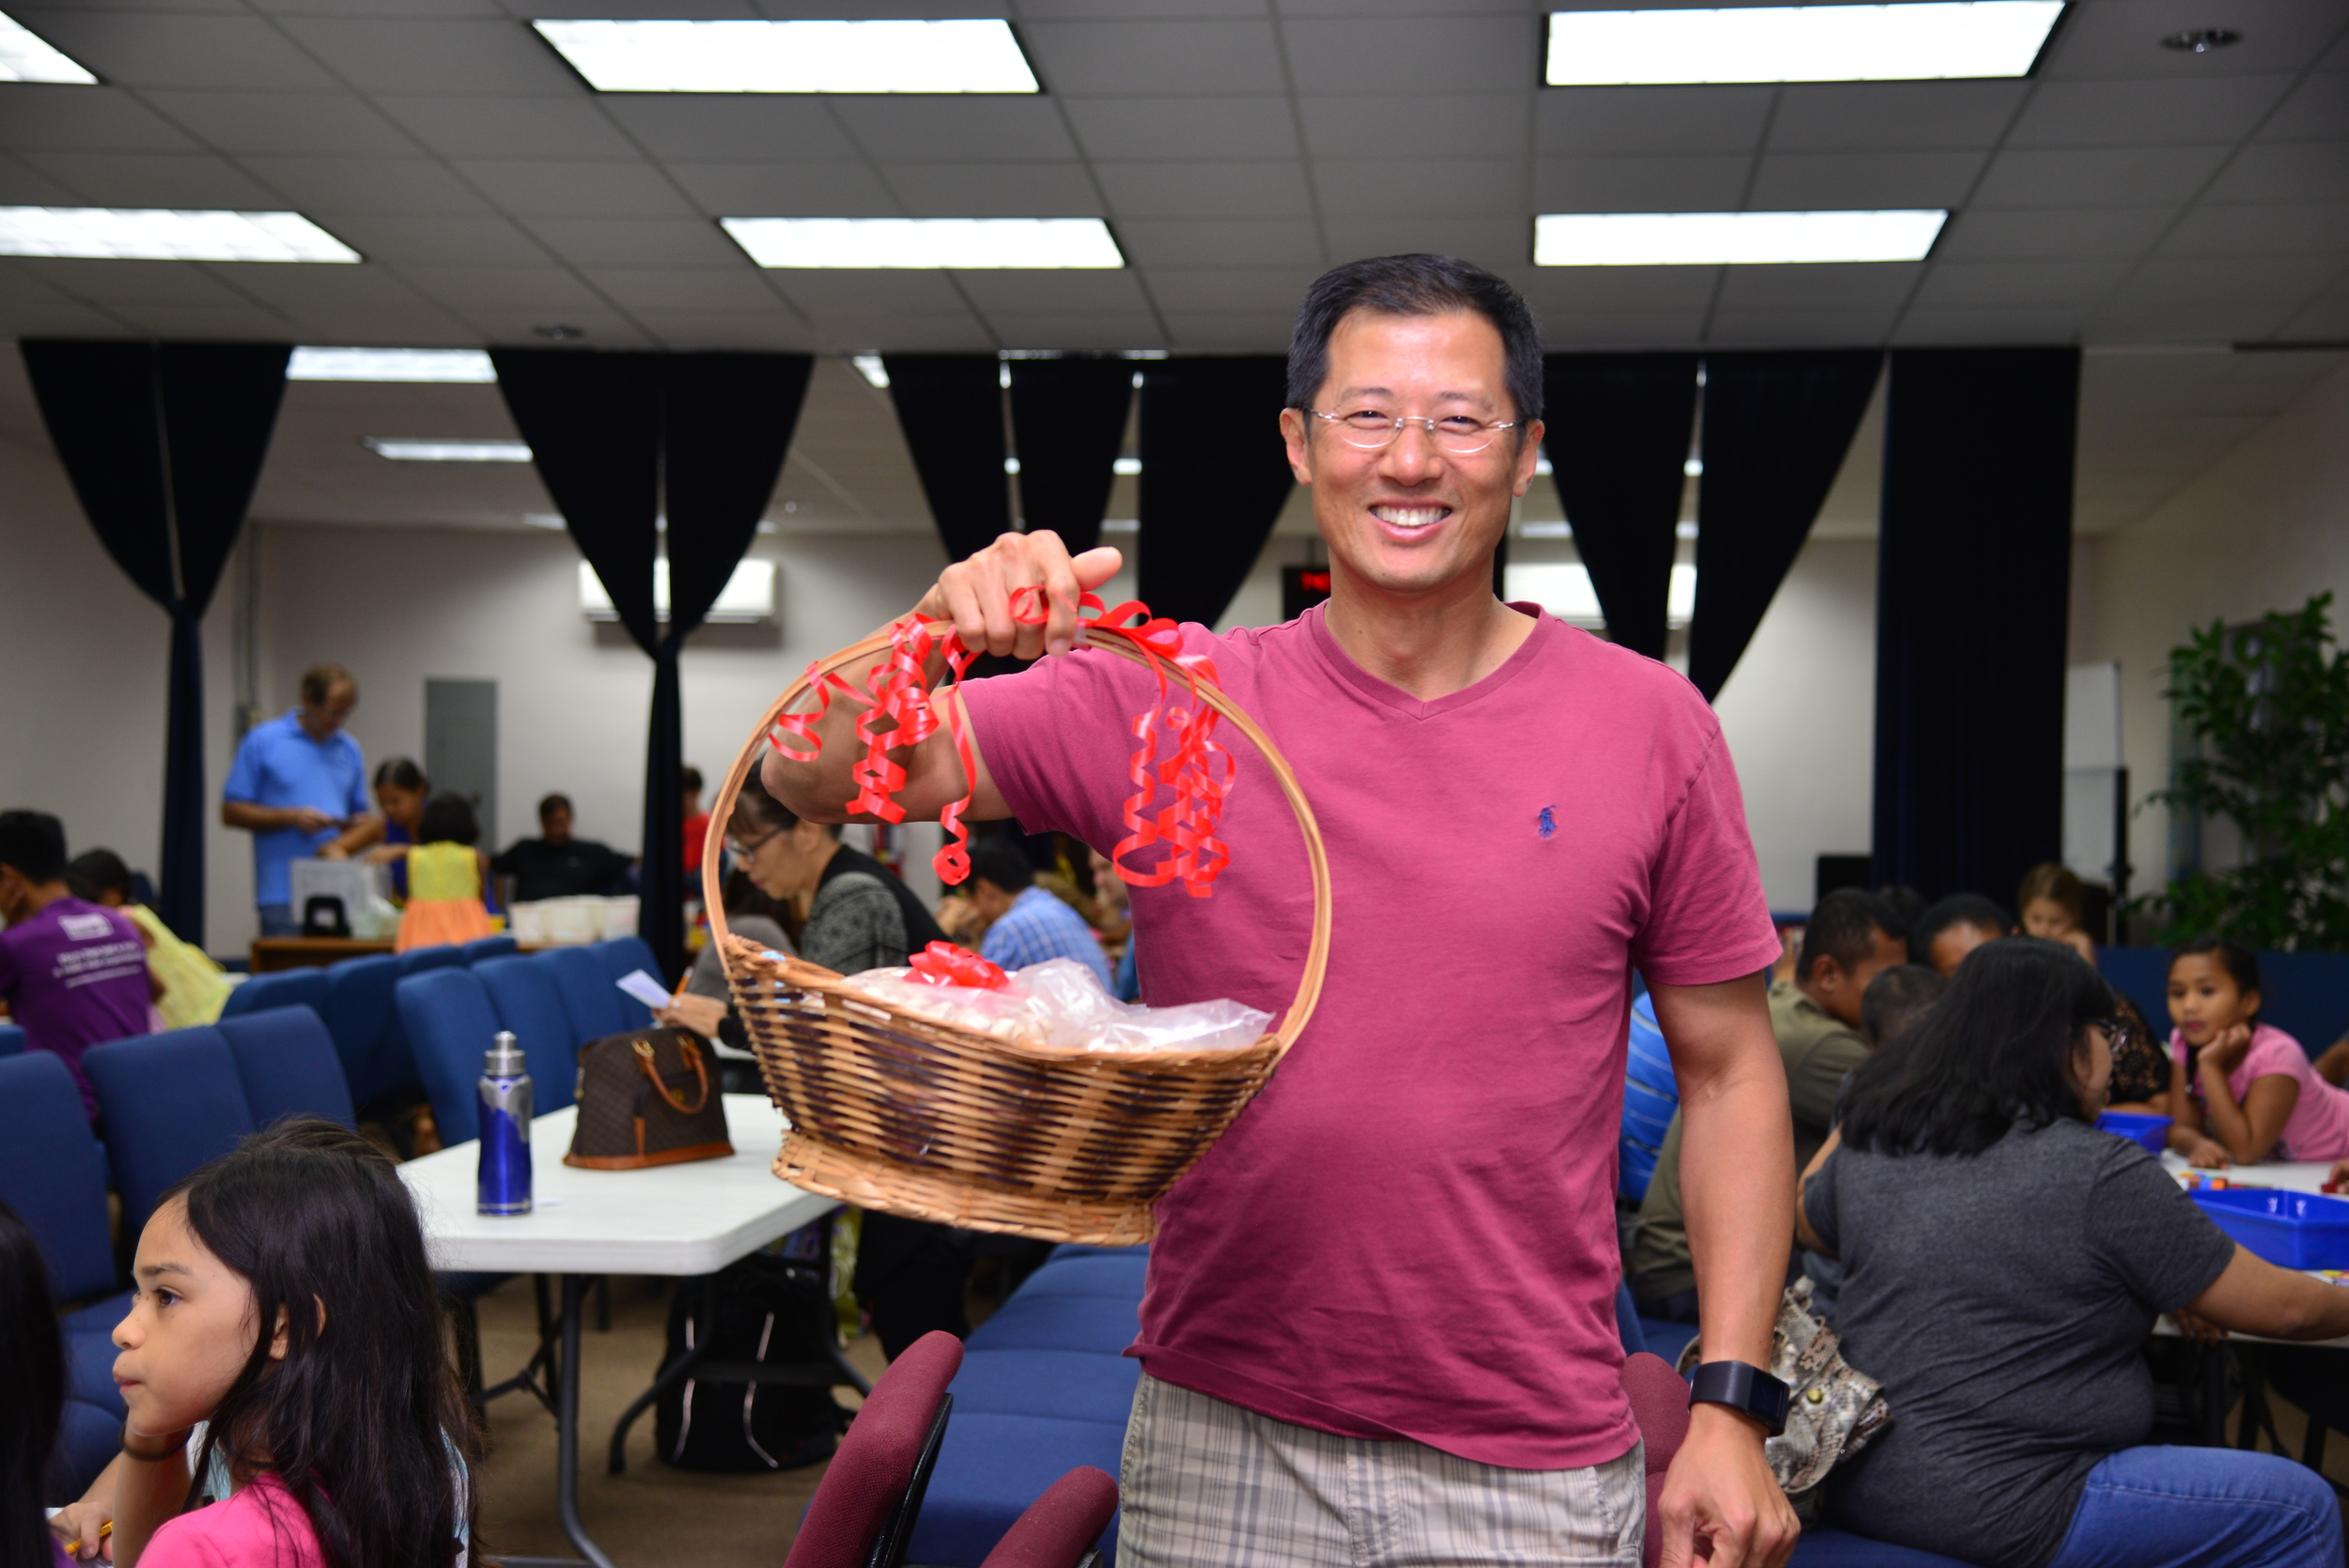 Jon Kim took this basket of pistachio home after winning the estimation game. His estimate was only 3% off the mark!